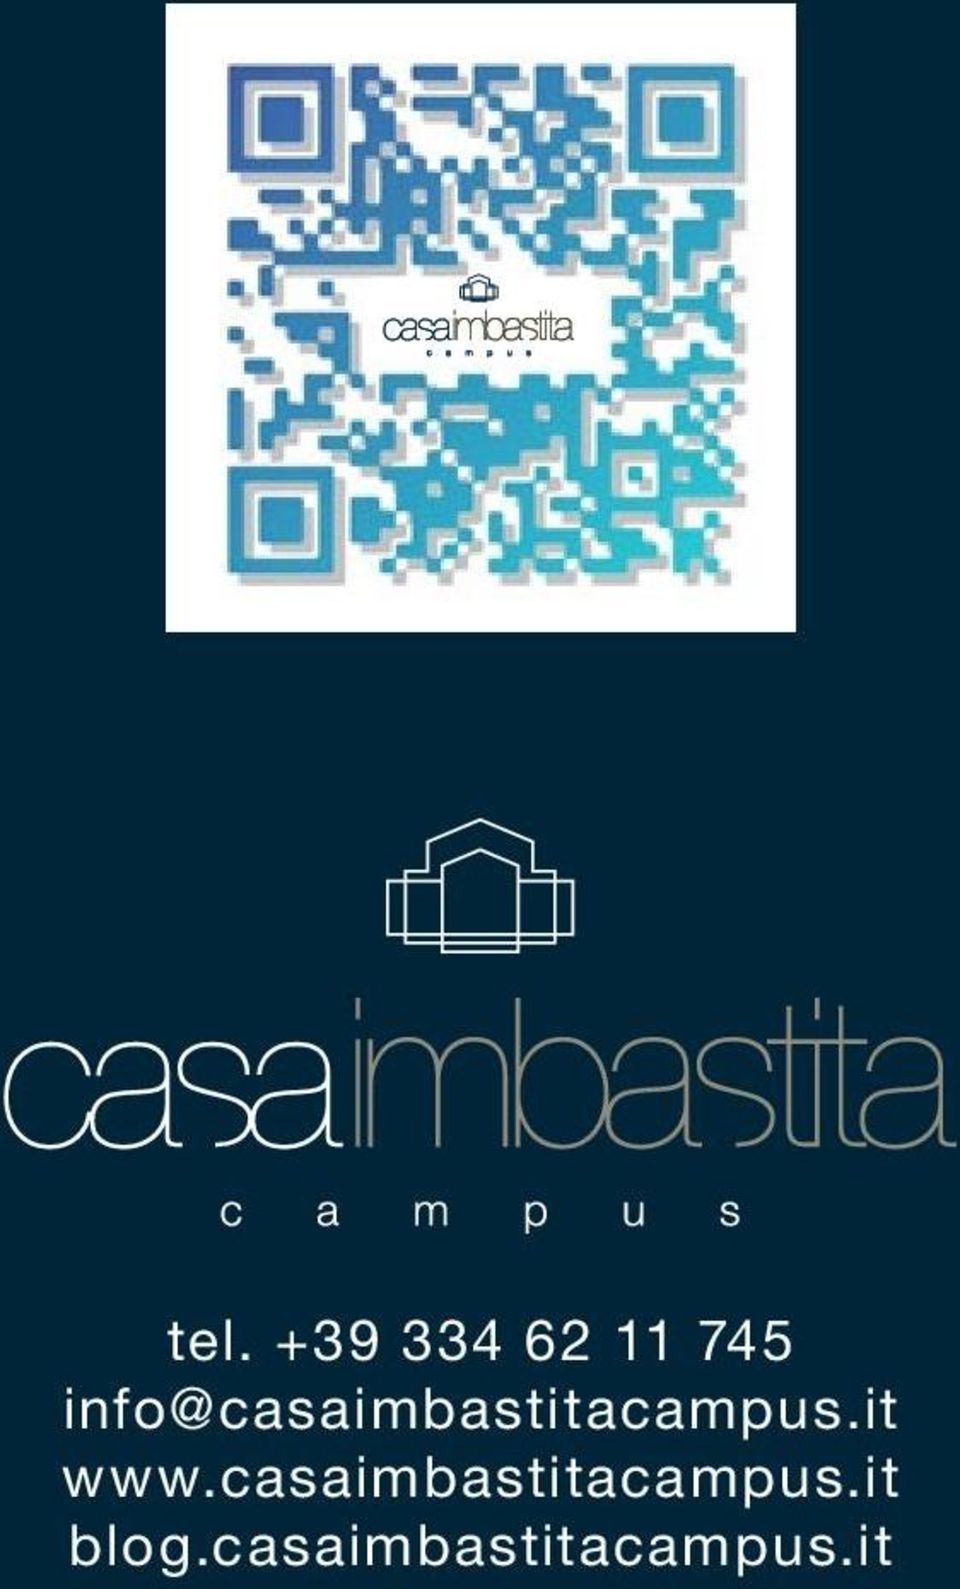 it www.casaimbastitacampus.